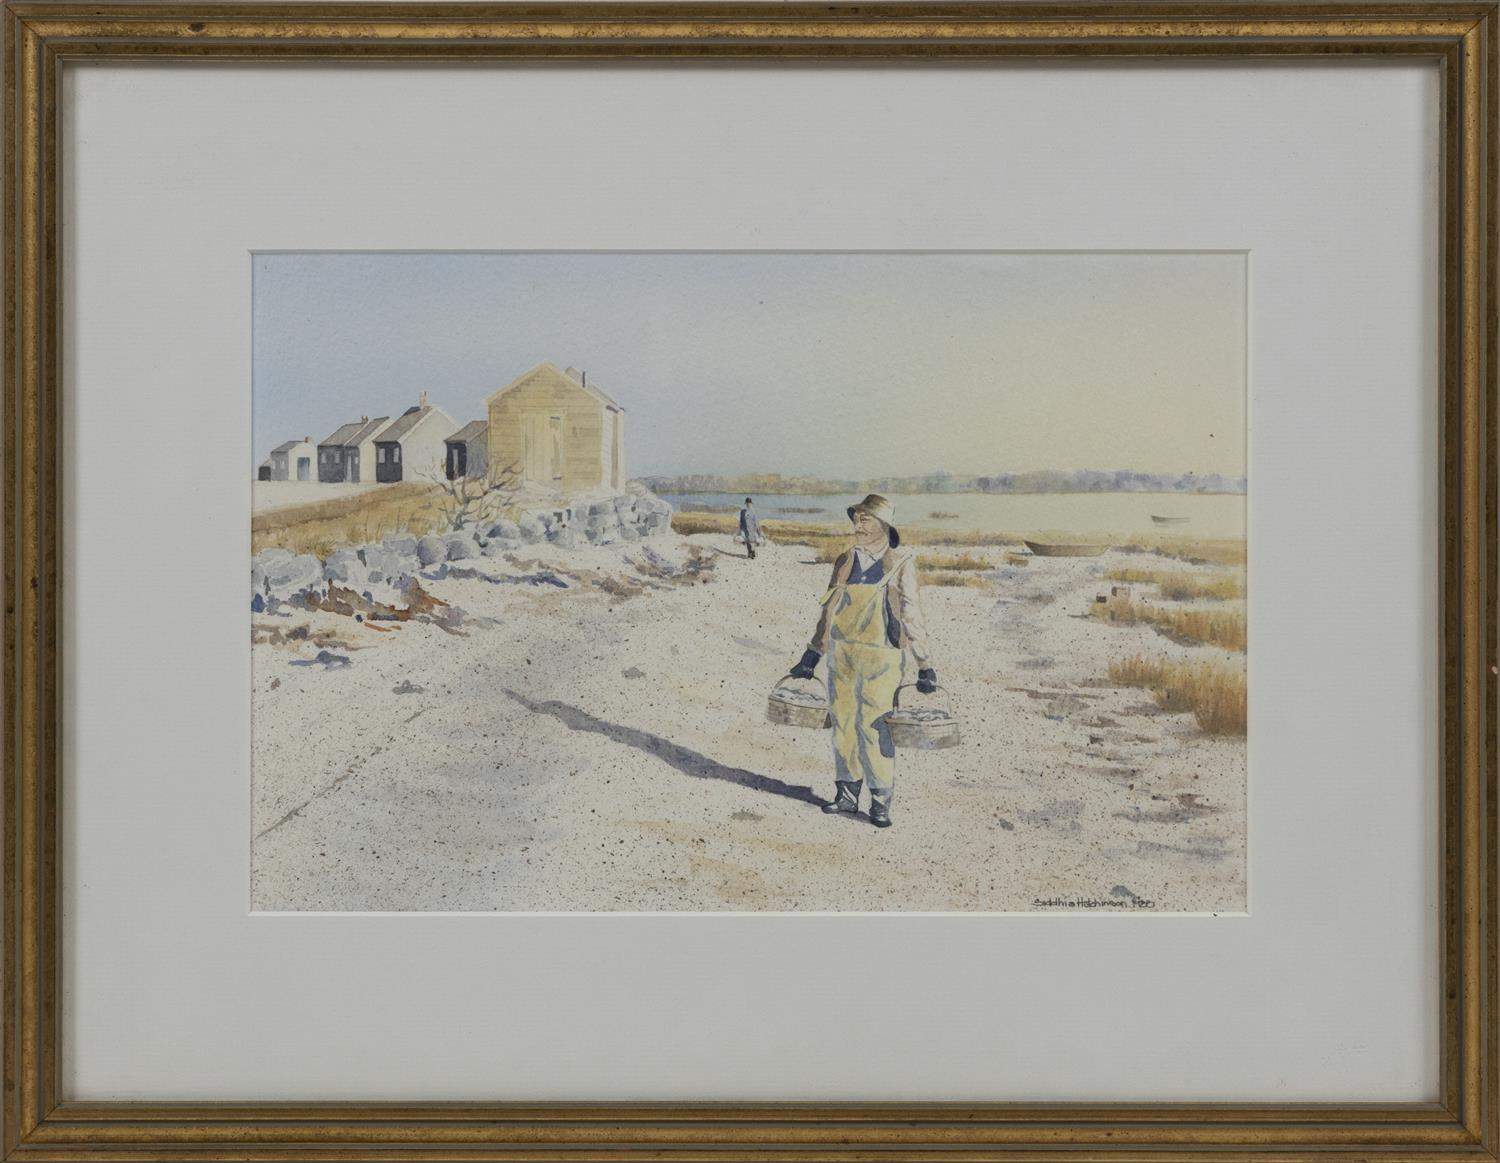 """SIDDHIA HUTCHINSON, Massachusetts/Puerto Rico, Contemporary, A fisherman carring baskets., Watercolor on paper, 9"""" x 13"""" sight. Fram..."""